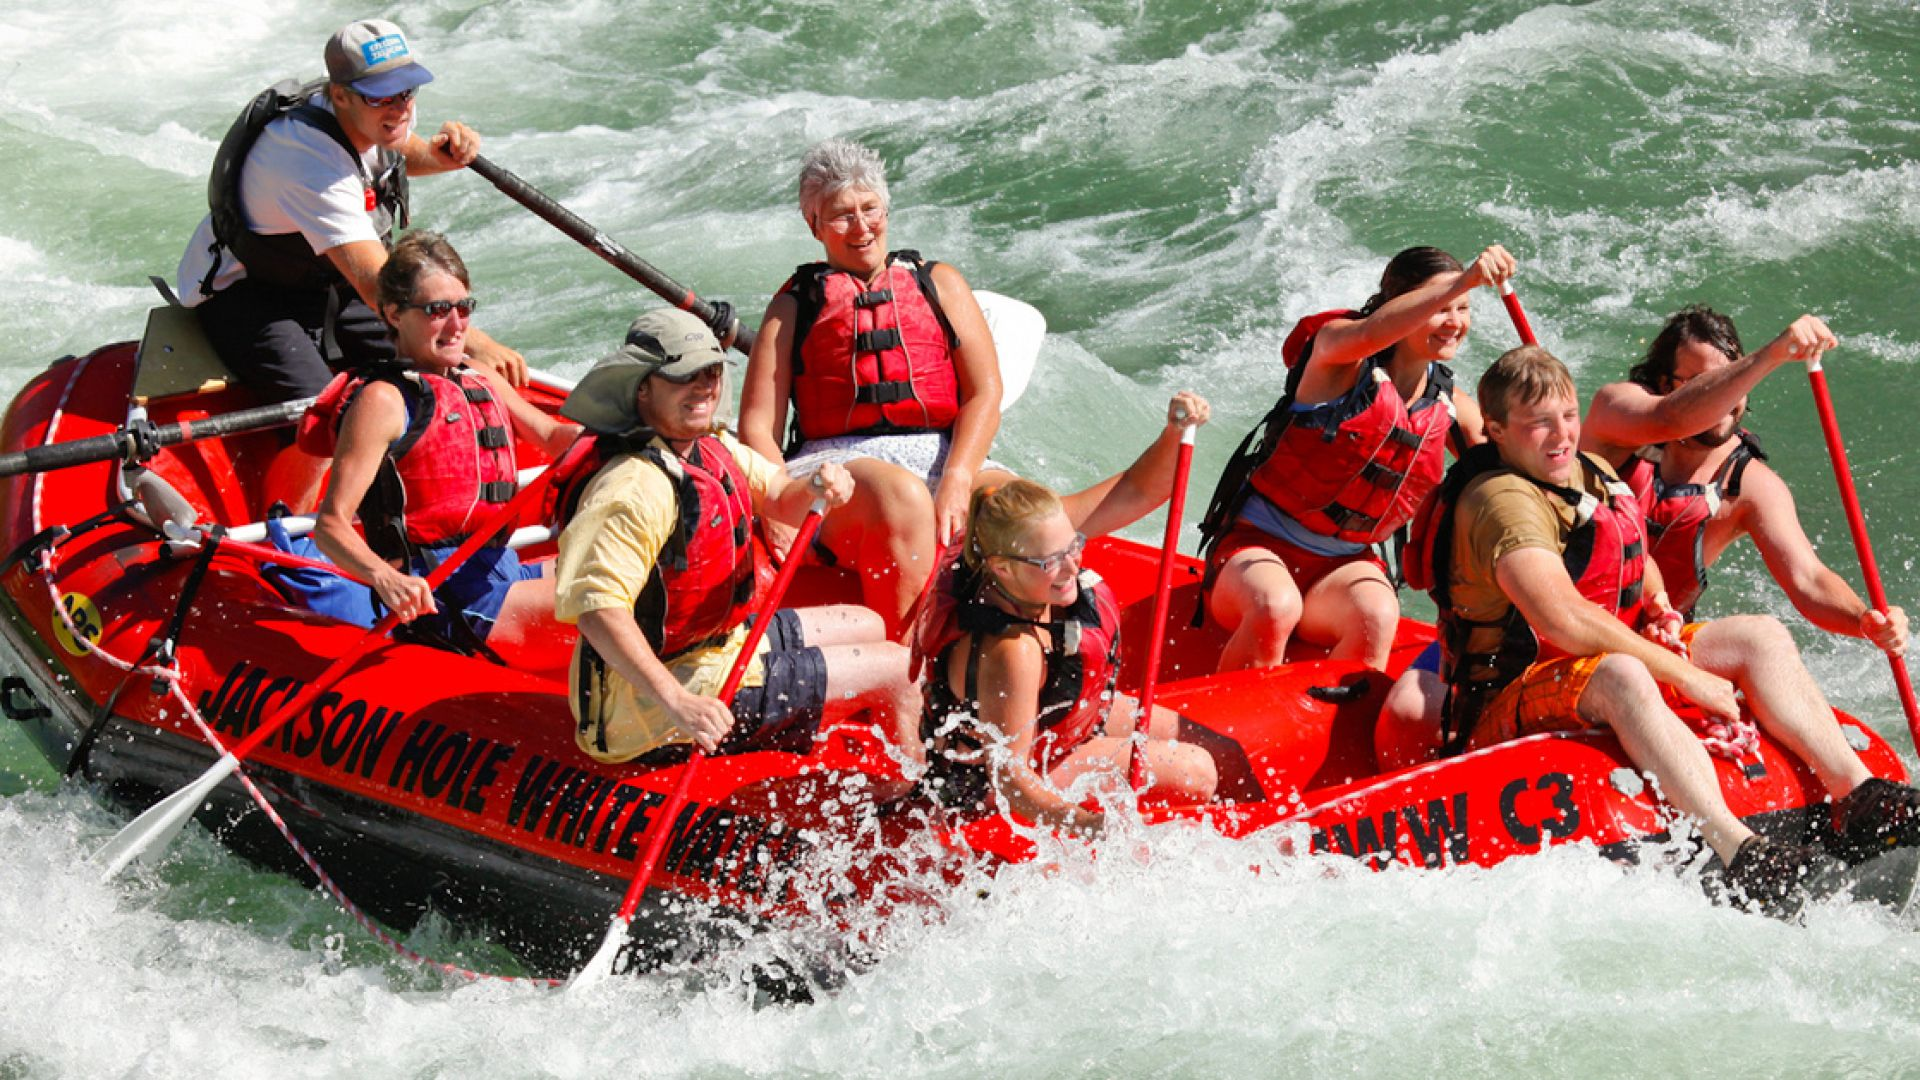 Take a guided whitewater or scenic raft trip on the Snake River in Jackson Hole this summer!